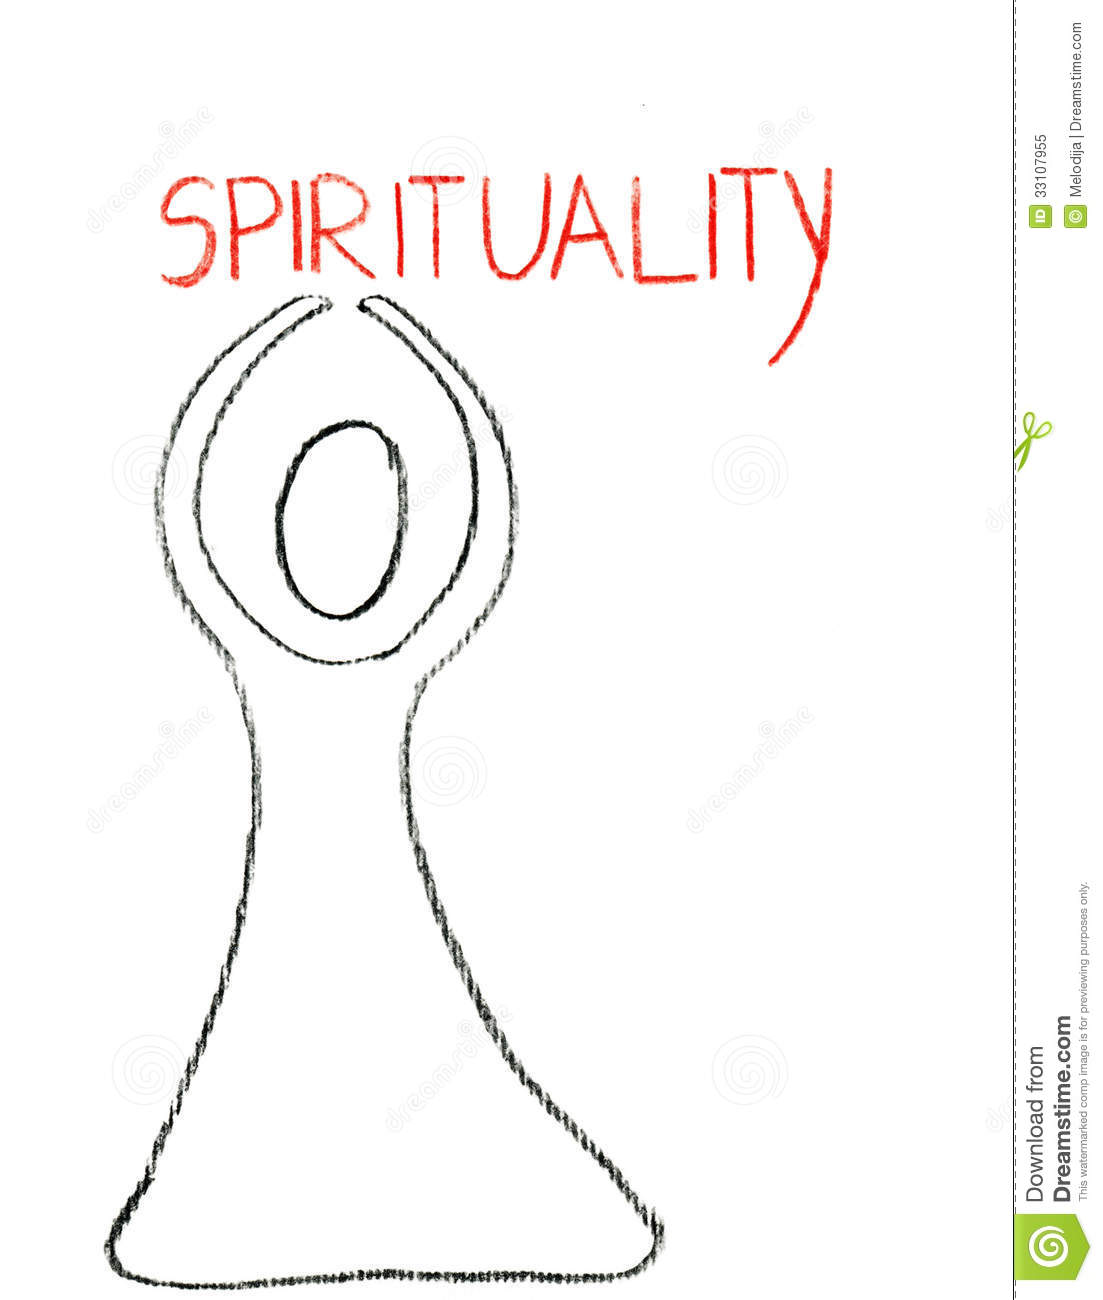 Spirituality Drawn With With A Crayon Royalty Free Stock